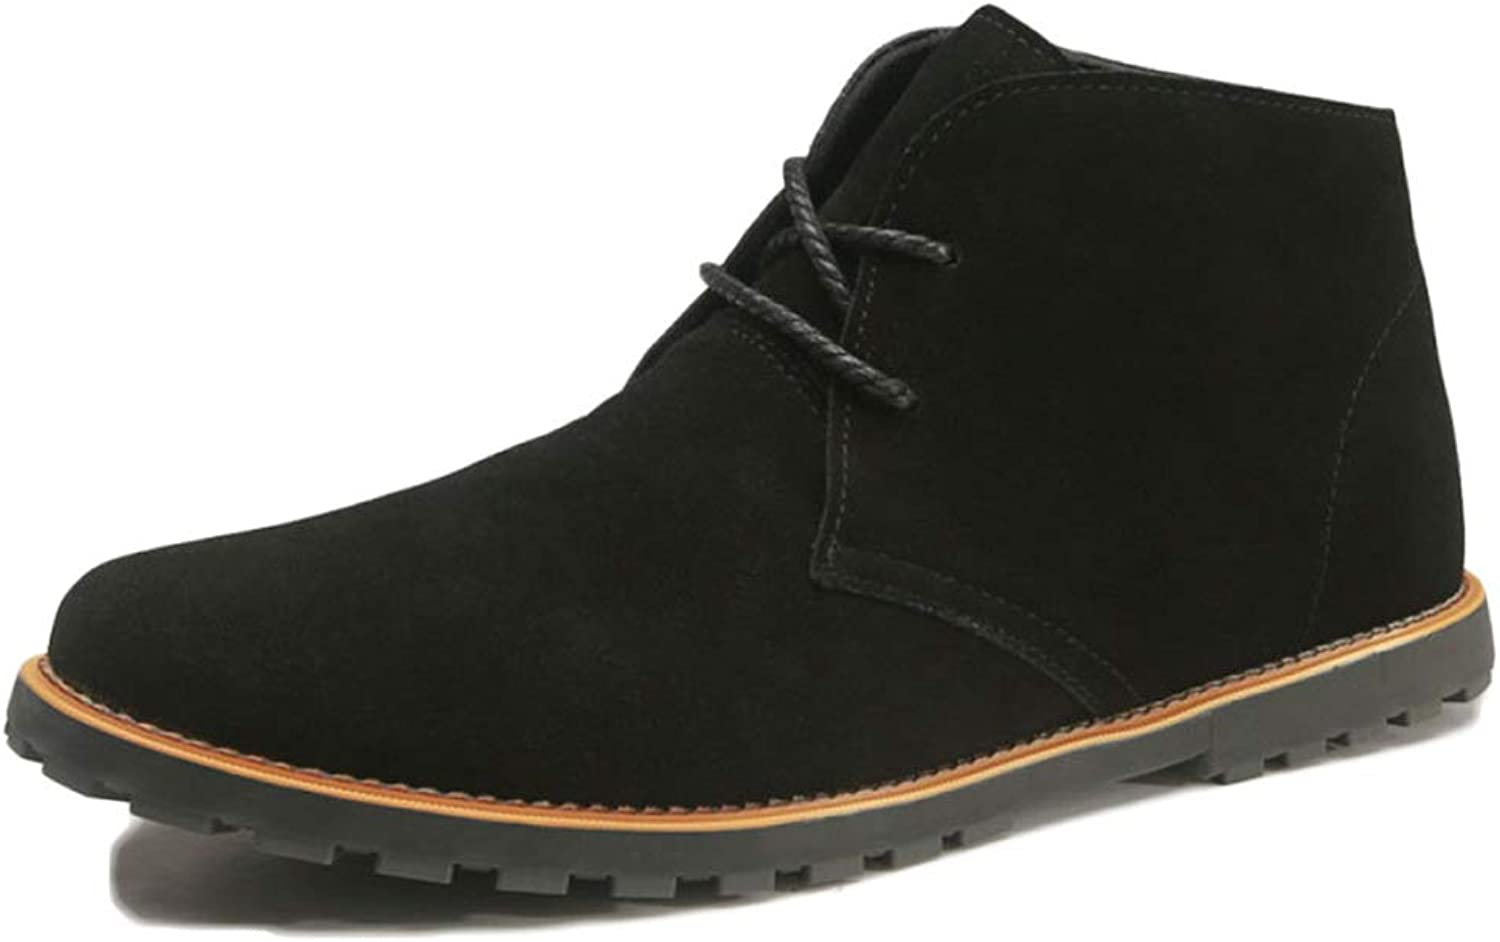 Men Martin Boots Autumn Leather Desert Breathable Chelsea Boots Fighting On Foot Snow shoes